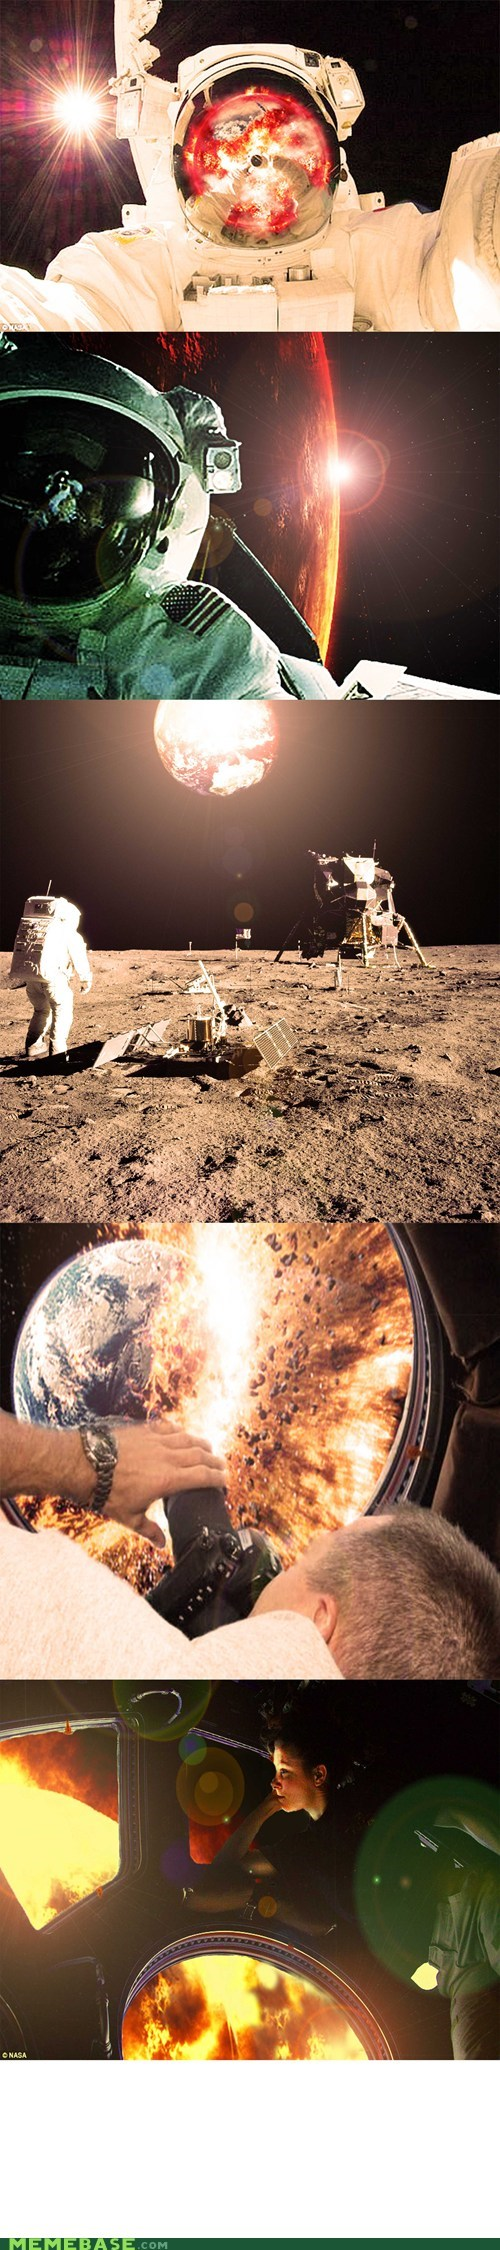 world burn photoshop astronaut space - 6716624896